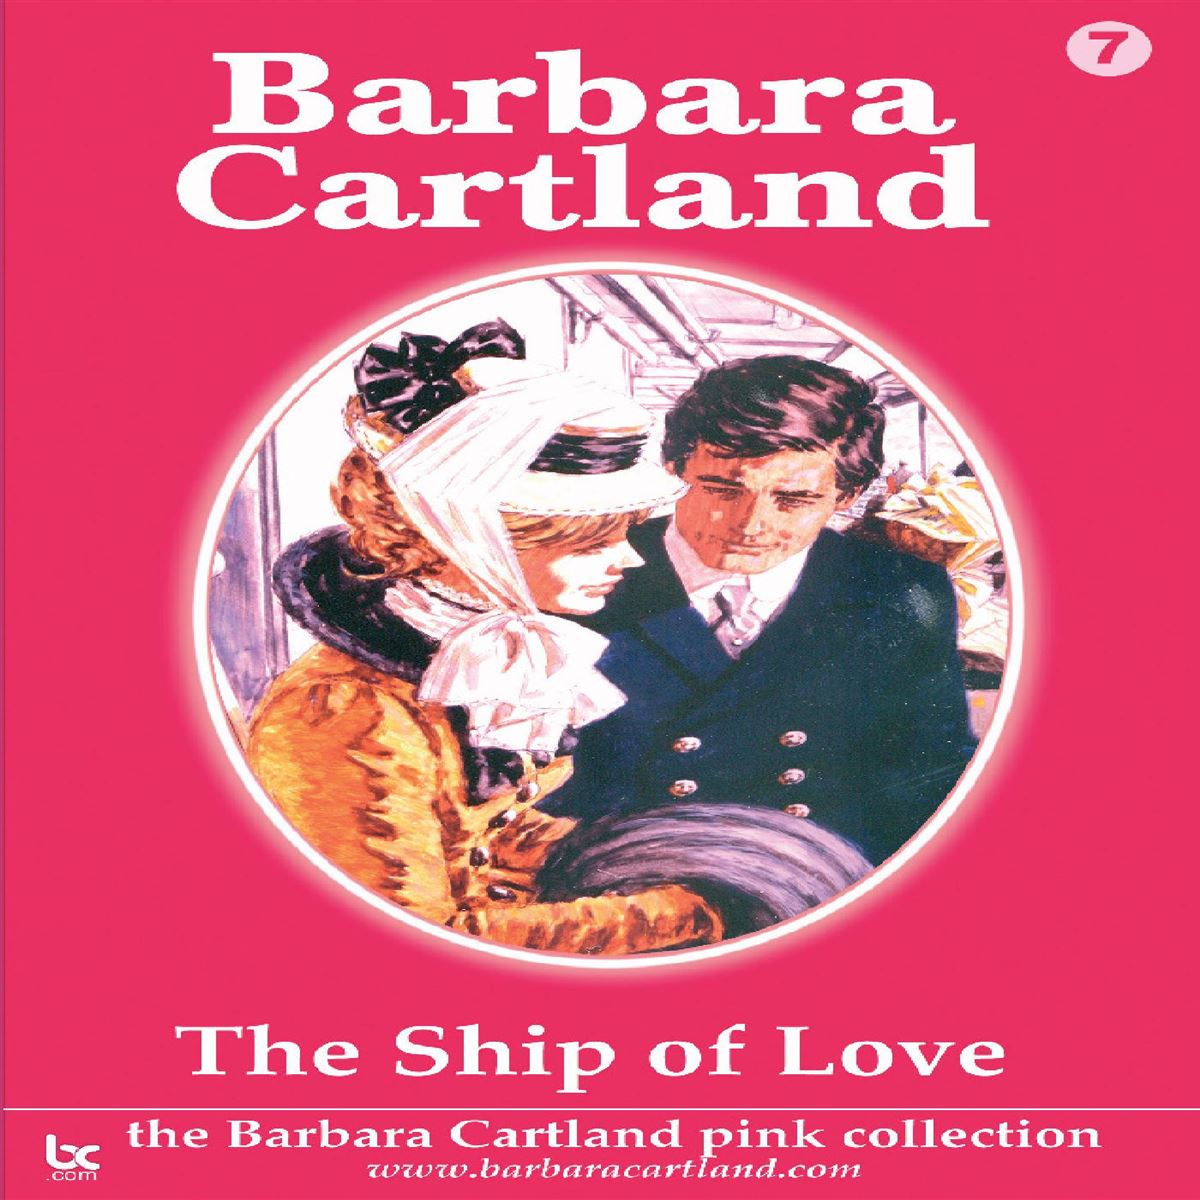 The Ship of Love